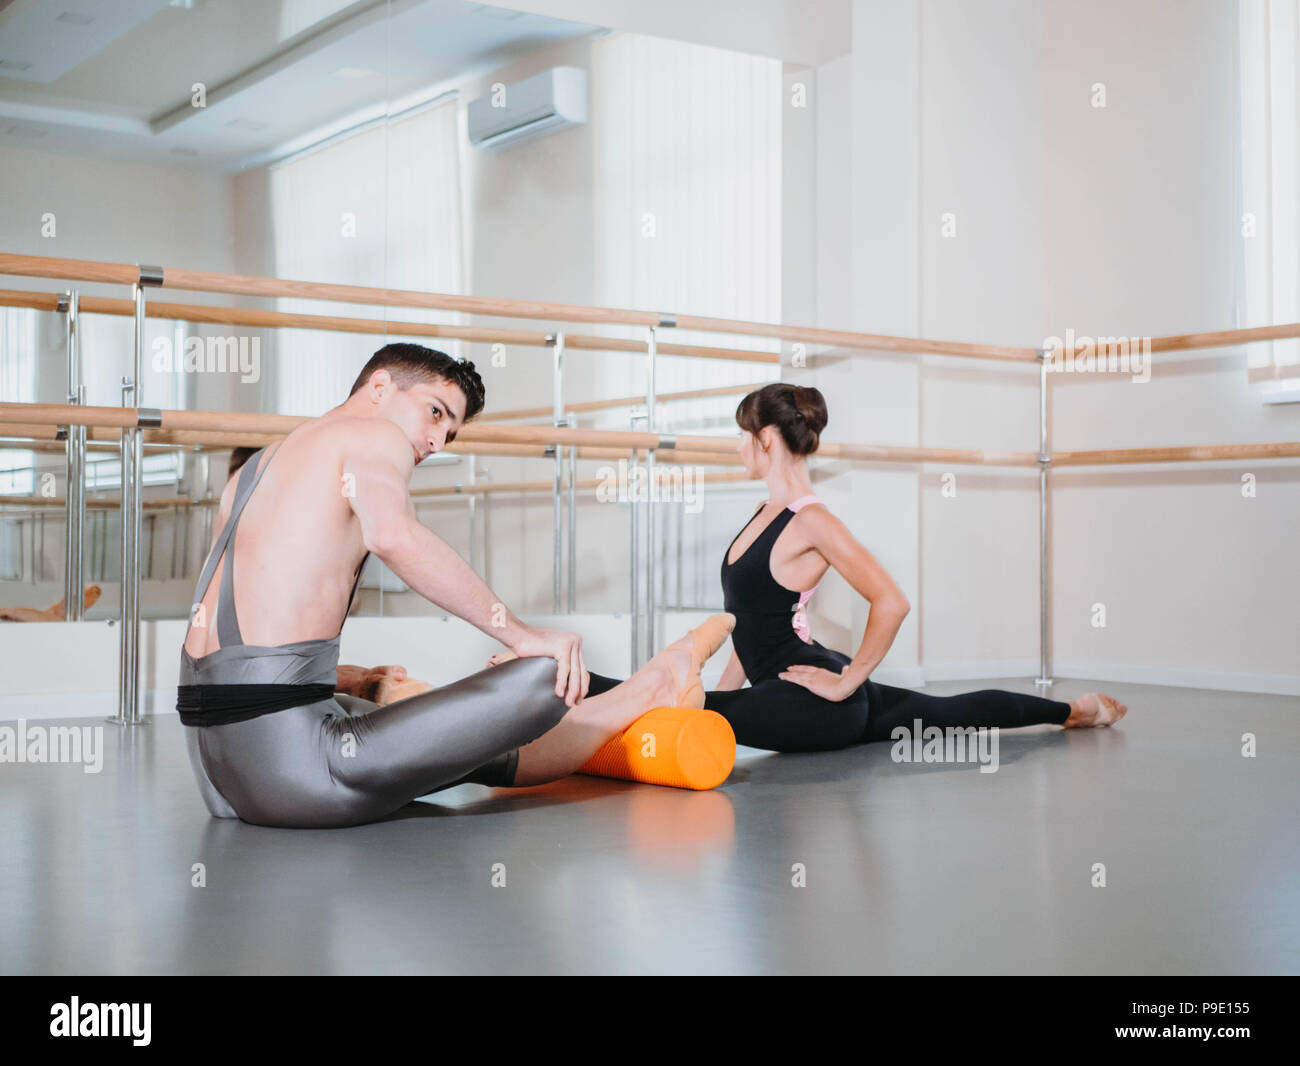 Preparation of body before performance in ballet studio. Male dancer and ballerina warming up near barre on rehearsal. - Stock Image